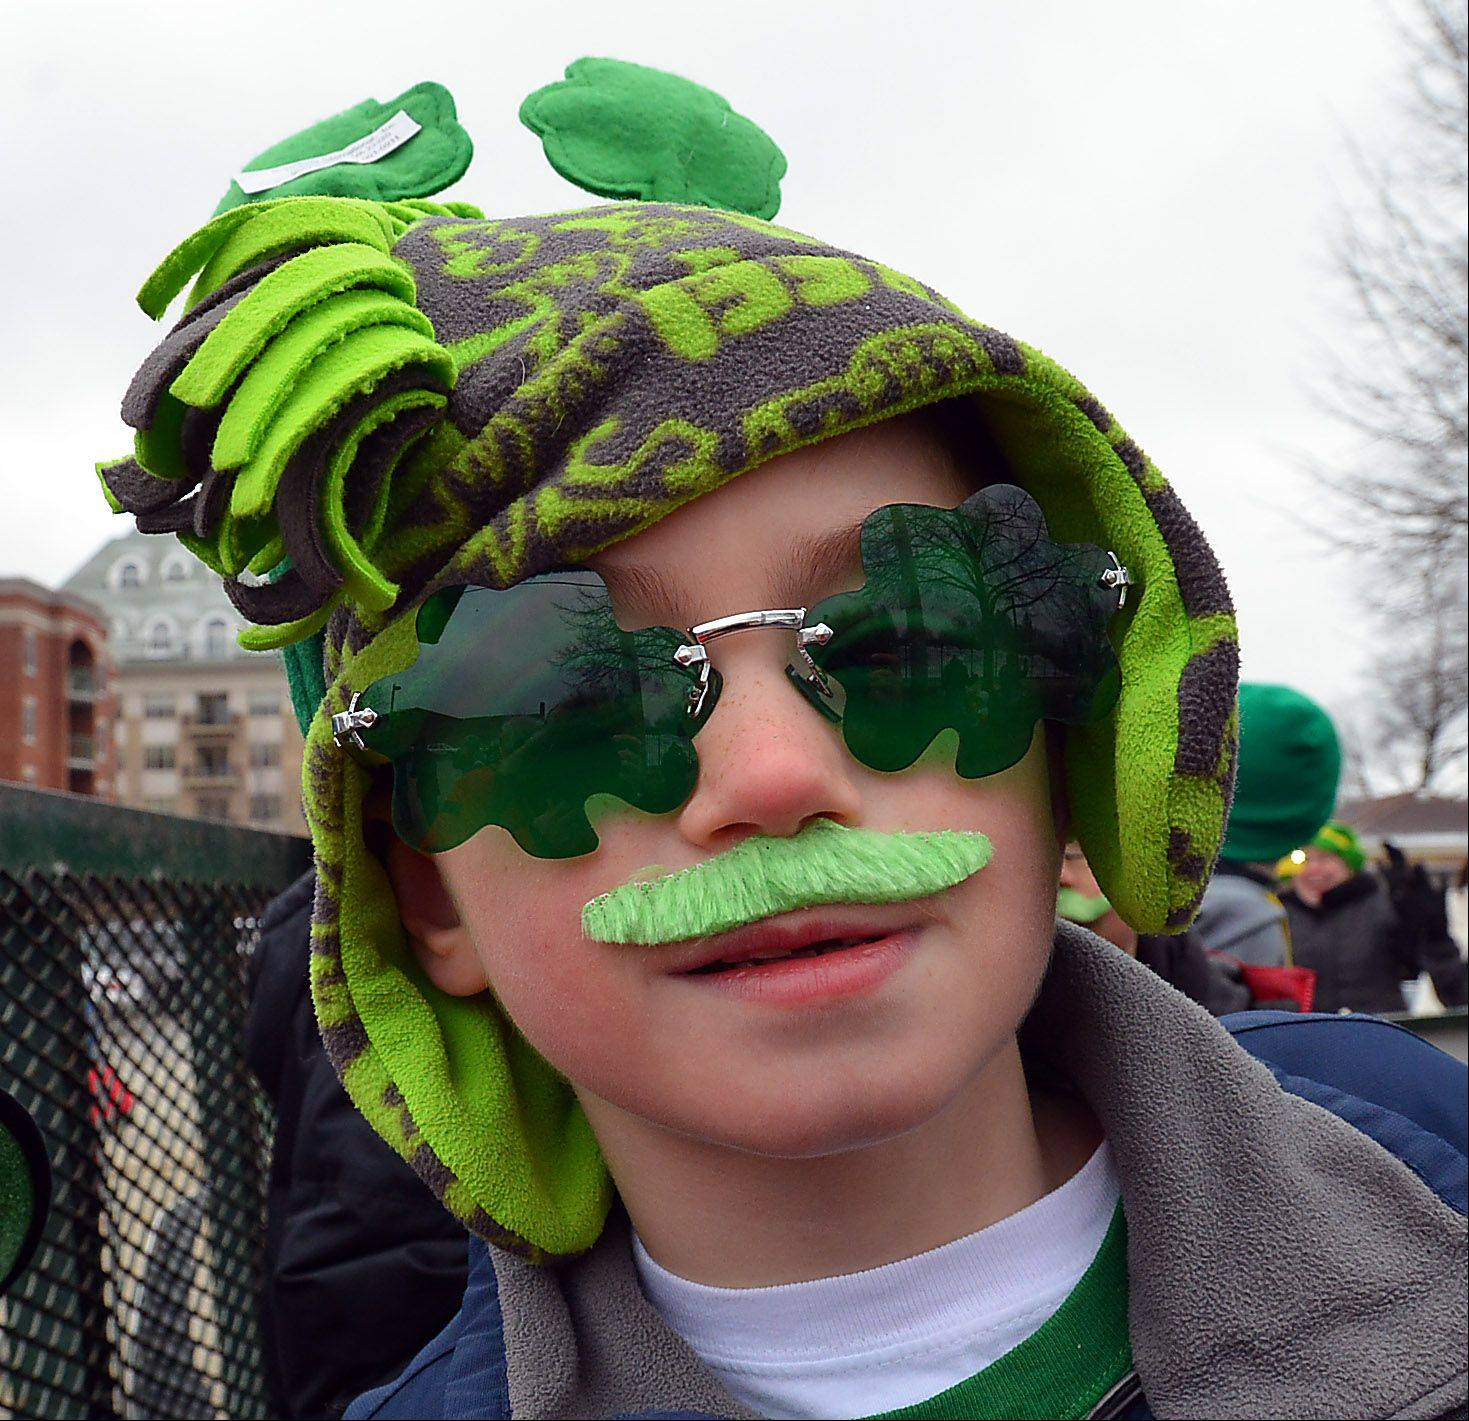 Despite the cold and the snow showers, hundreds turned out to enjoy Palatine's St. Patrick's Day parade including Nathan Roos, 8, of Palatine.